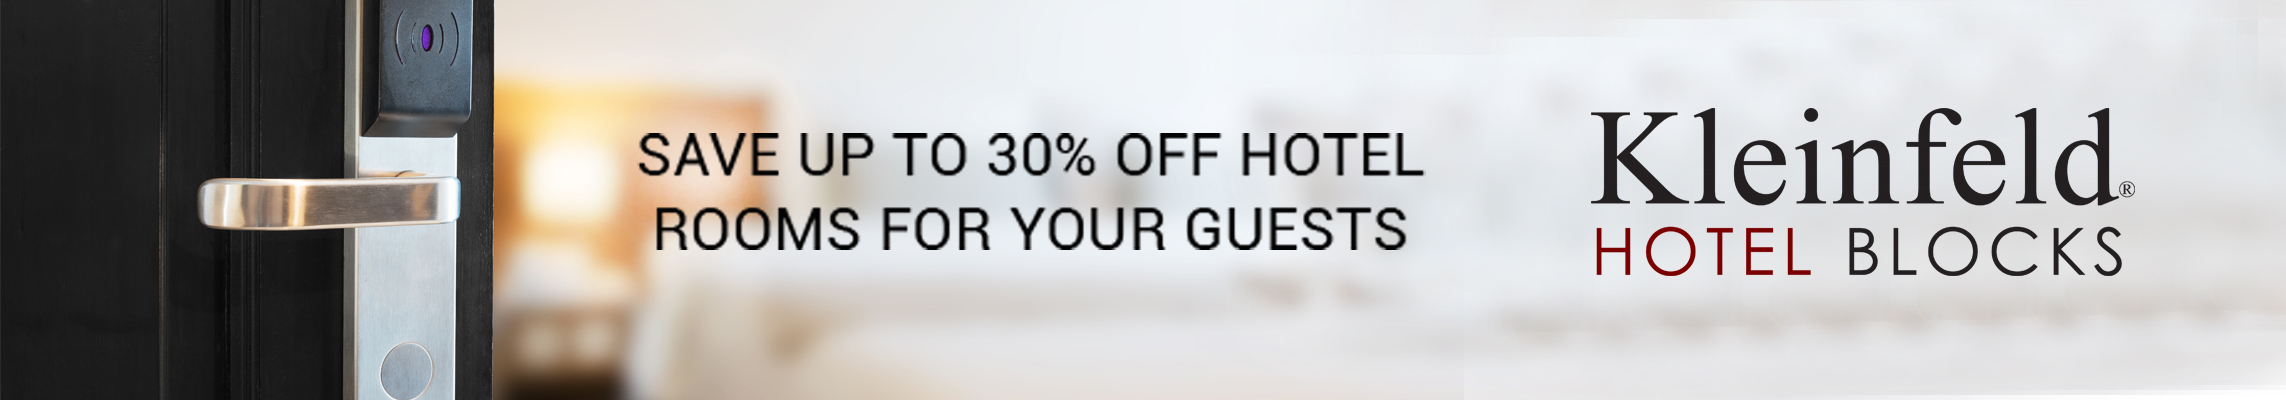 Hotel Blocks Home Page Banner